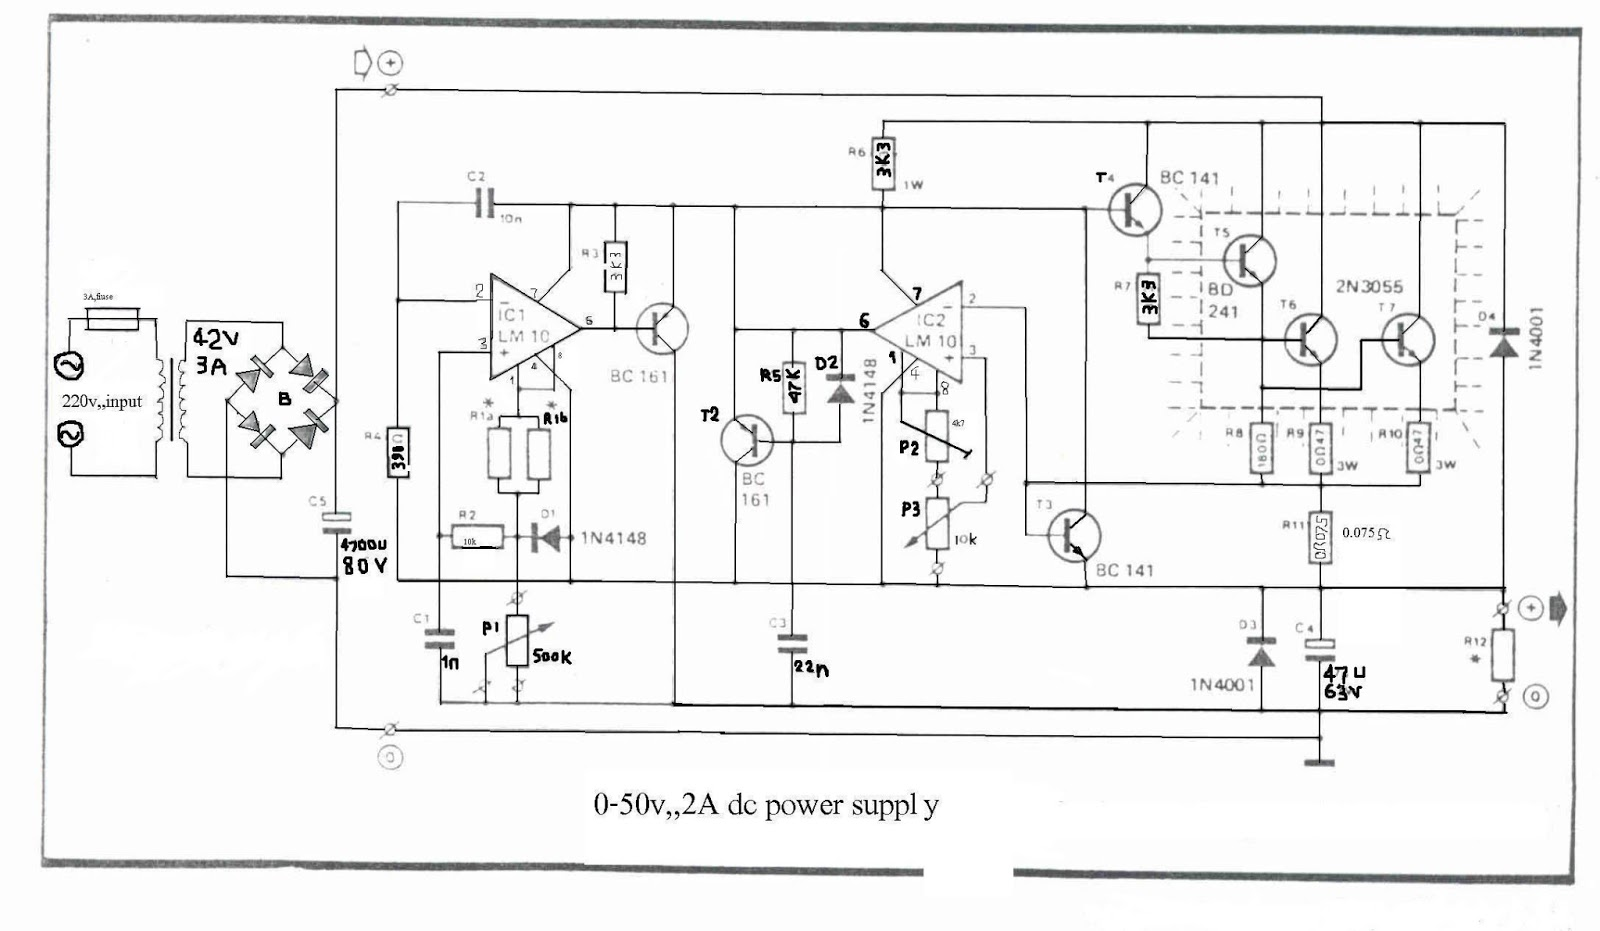 March 2013 The Circuit Lm339 This Is A Basic Two Contact Touch Switch Sensor Diagram